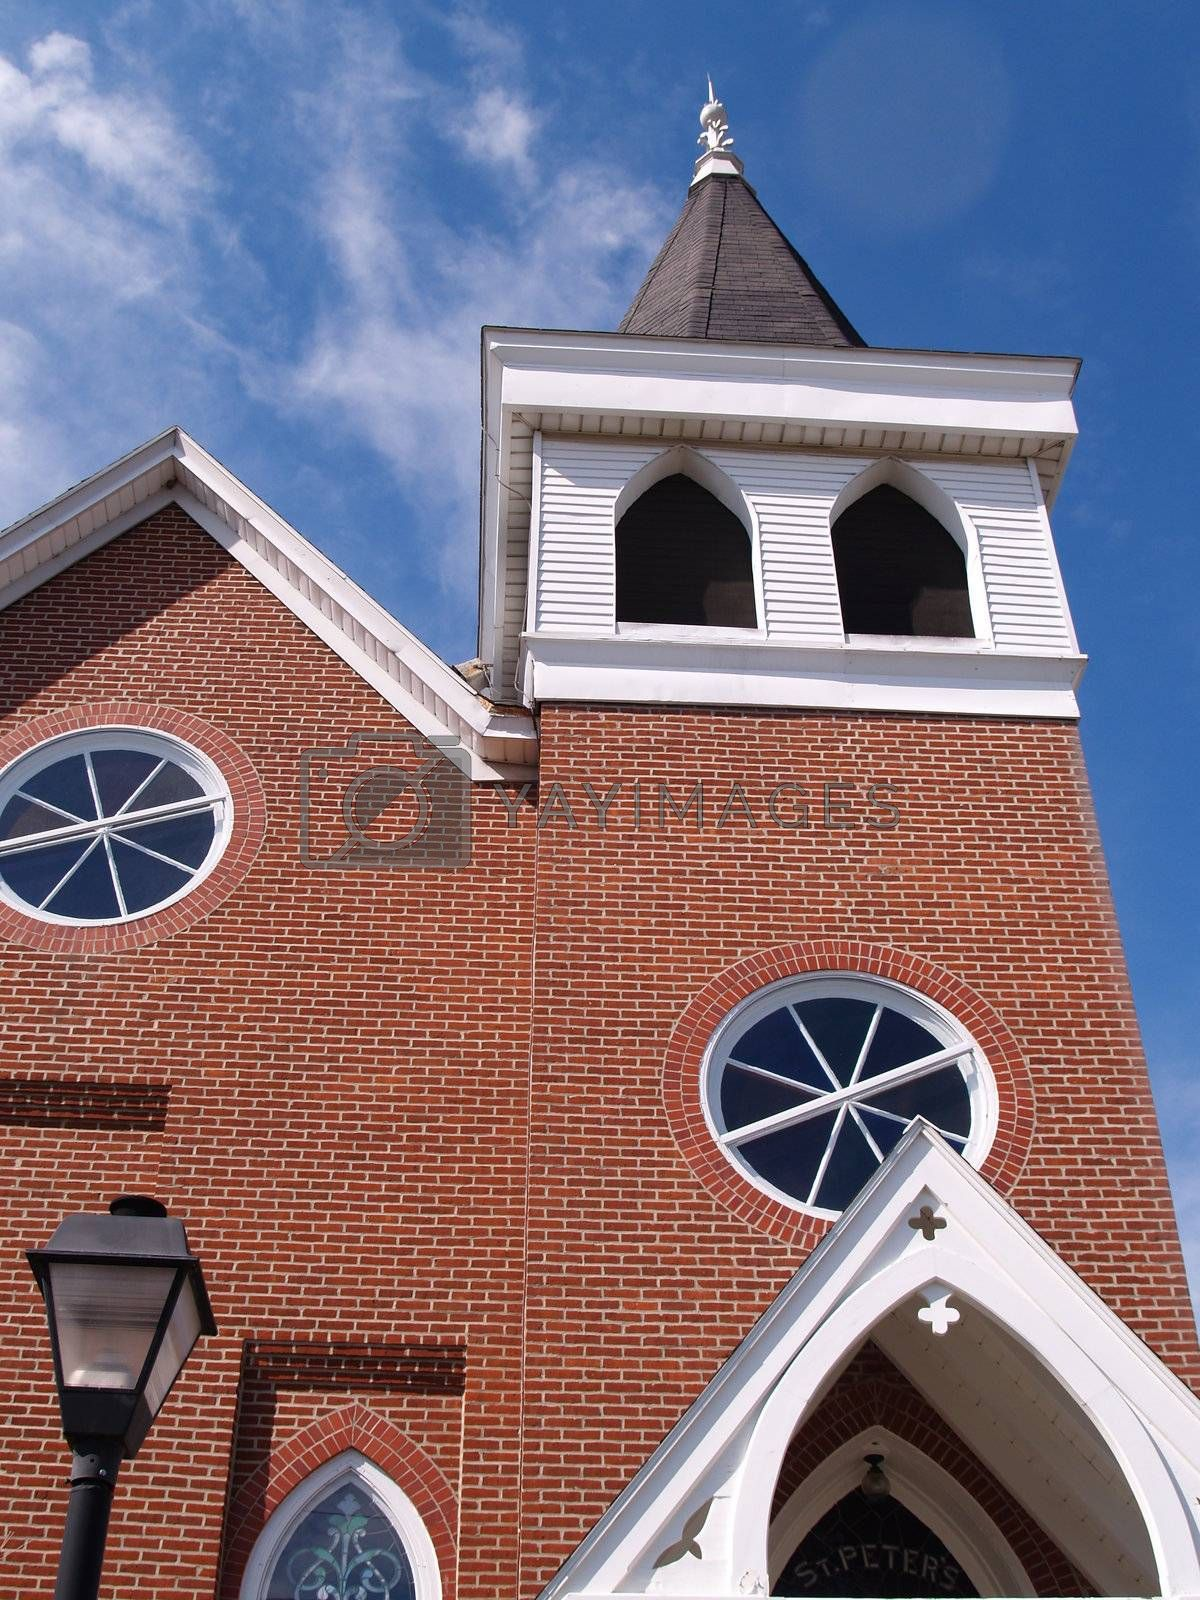 exterior of a red brick church with bell tower and steeple